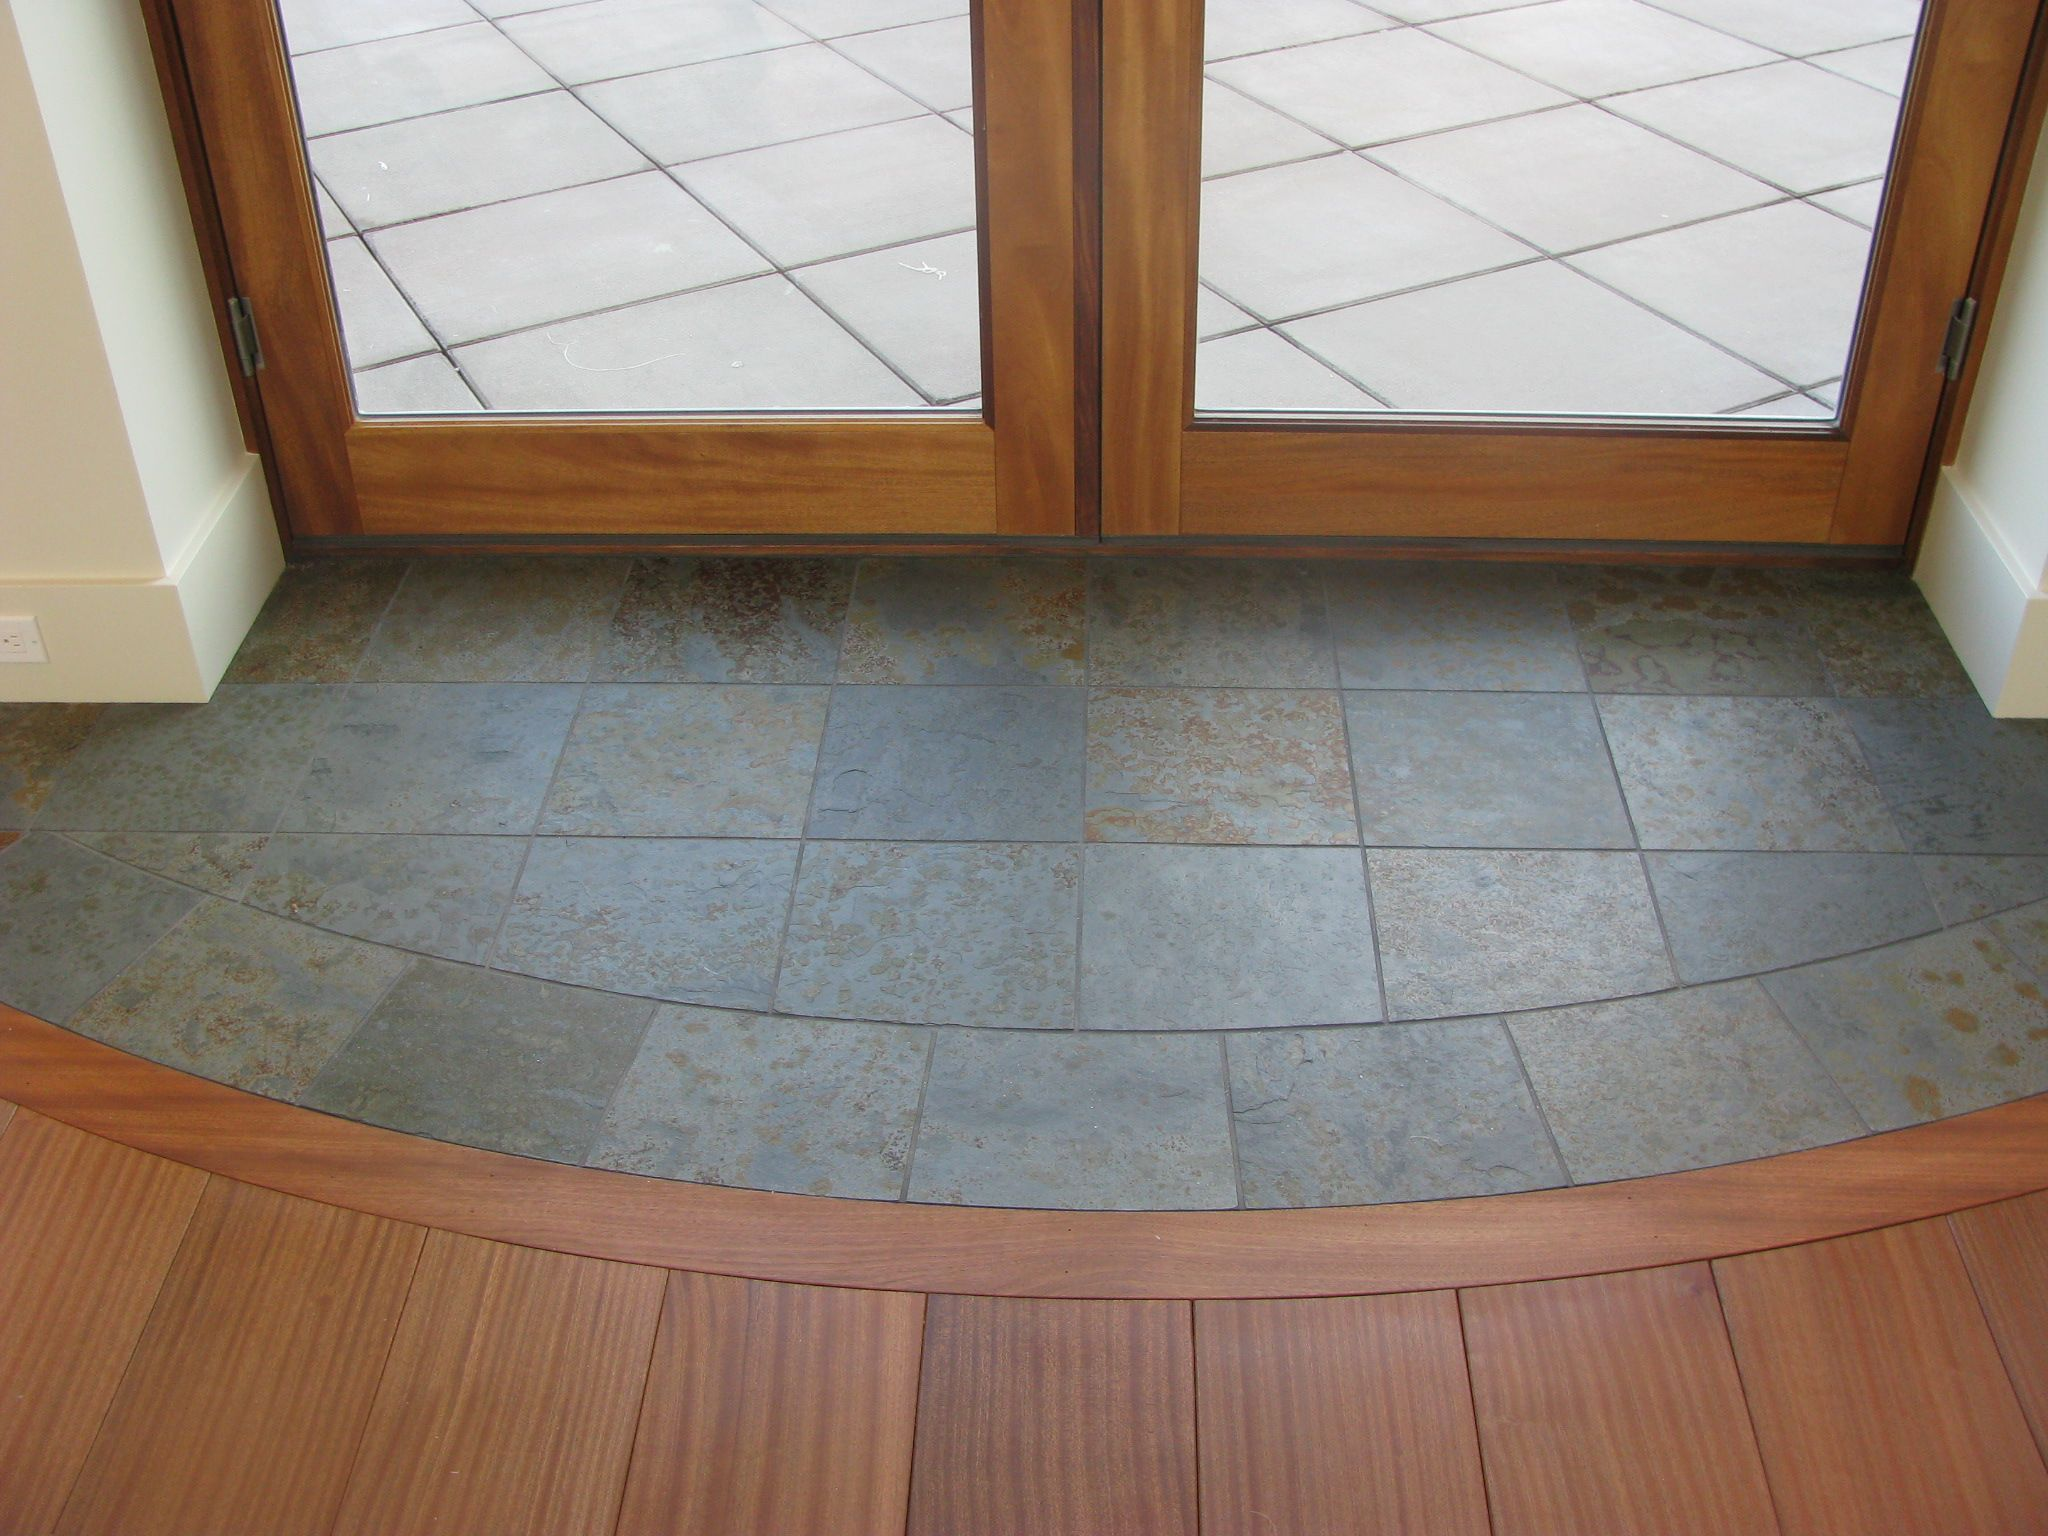 Slate Entryway To Protect Hardwood Floors At French Door For When I